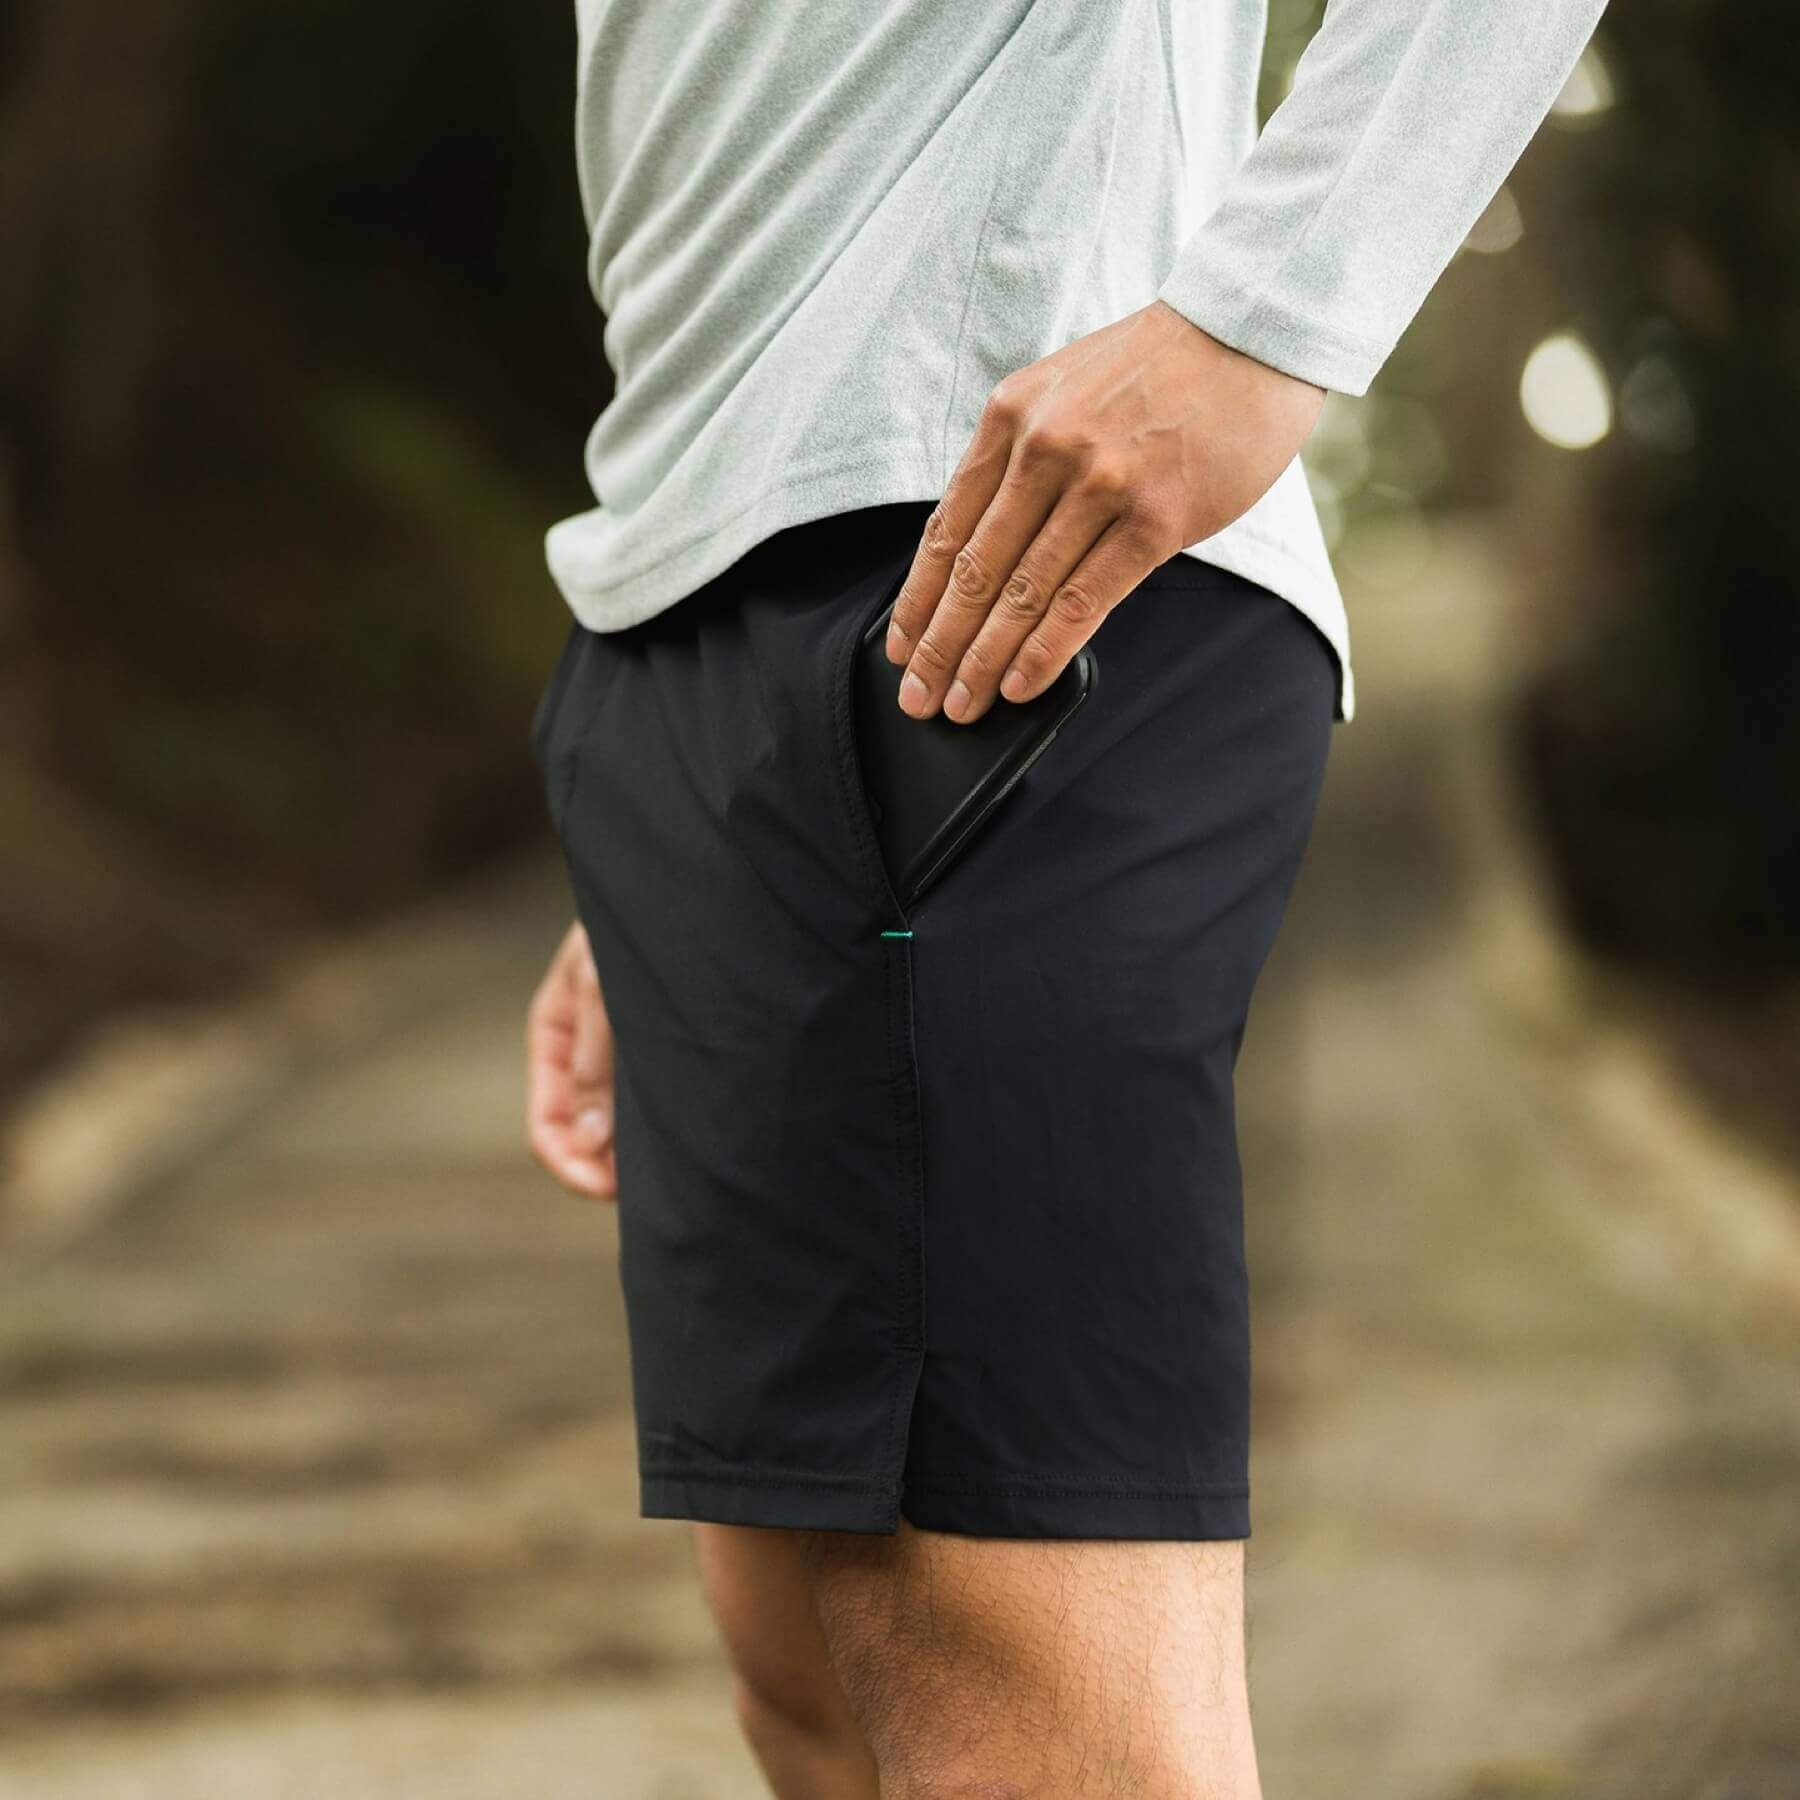 Testing the best men's workout shorts with liners